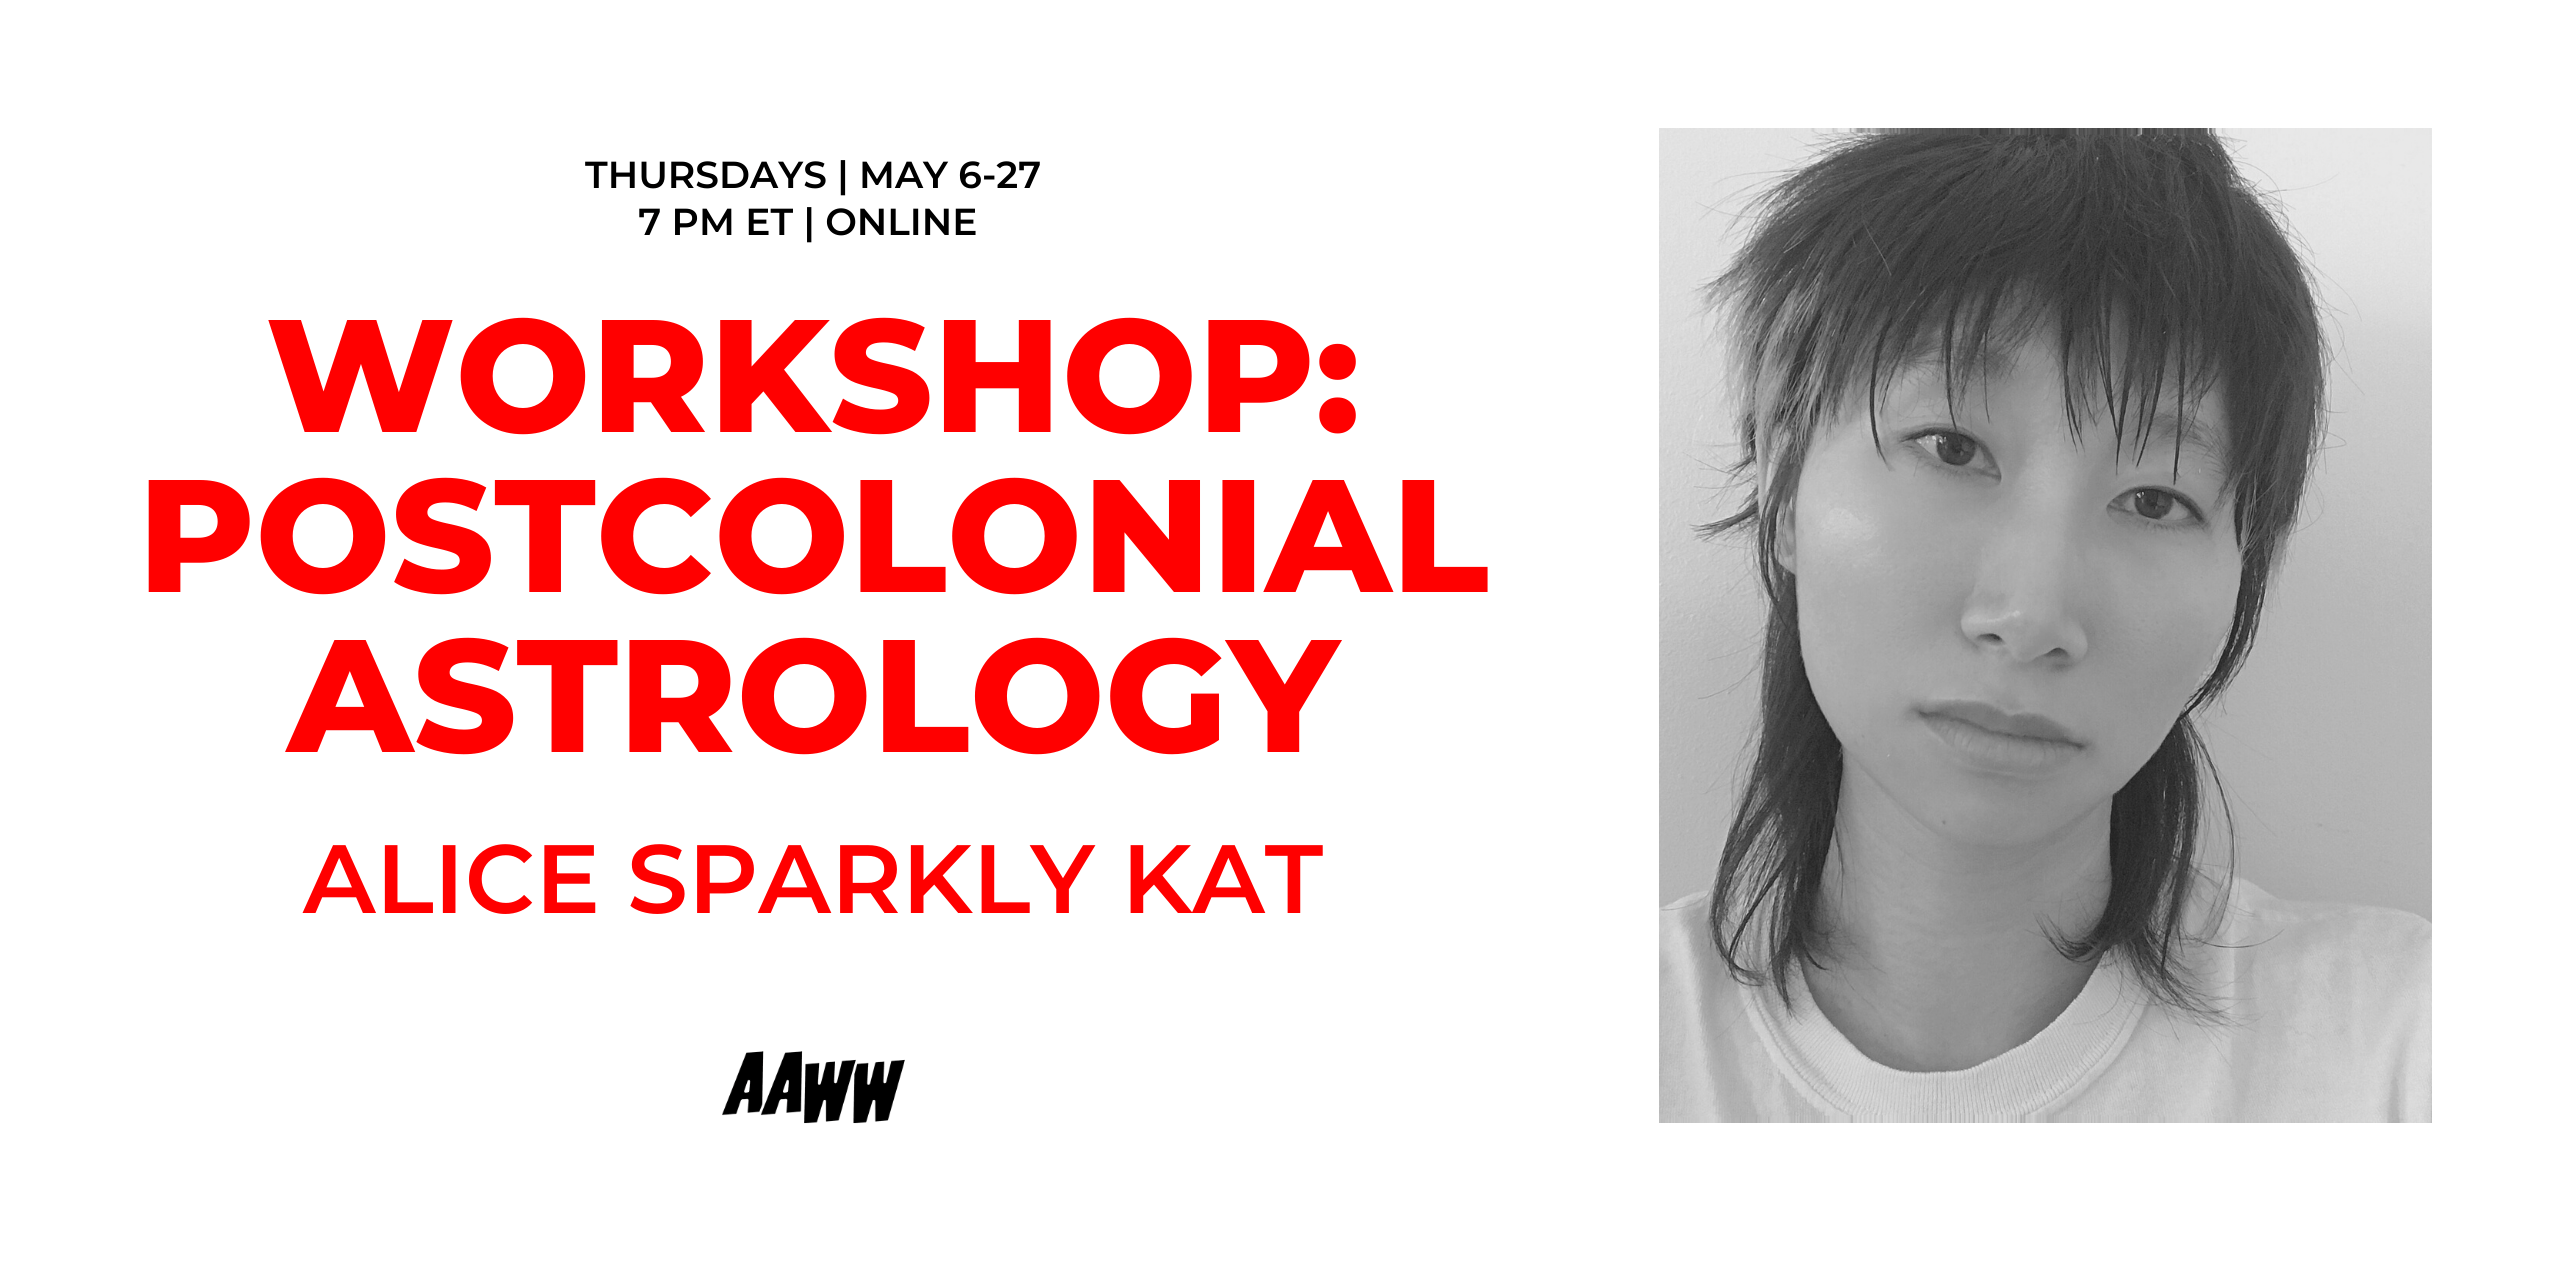 WORKSHOP: POSTCOLONIAL ASTROLOGY